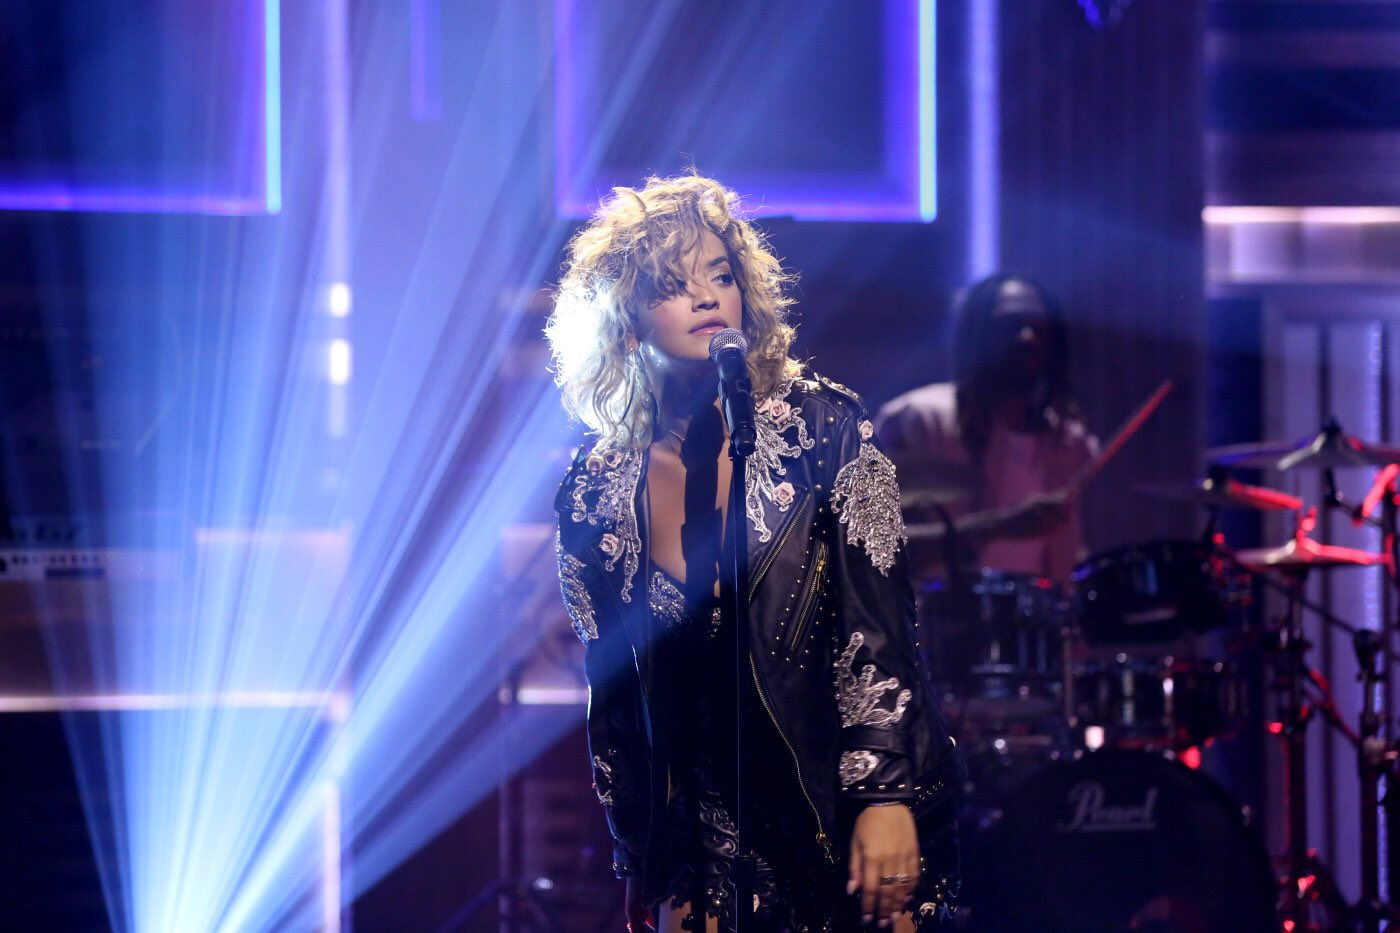 East coast! @FallonTonight starts now!! I'm performing #YourSong in a few!! 👱🏻♀️❤️ https://t.co/s9gF0m2d39